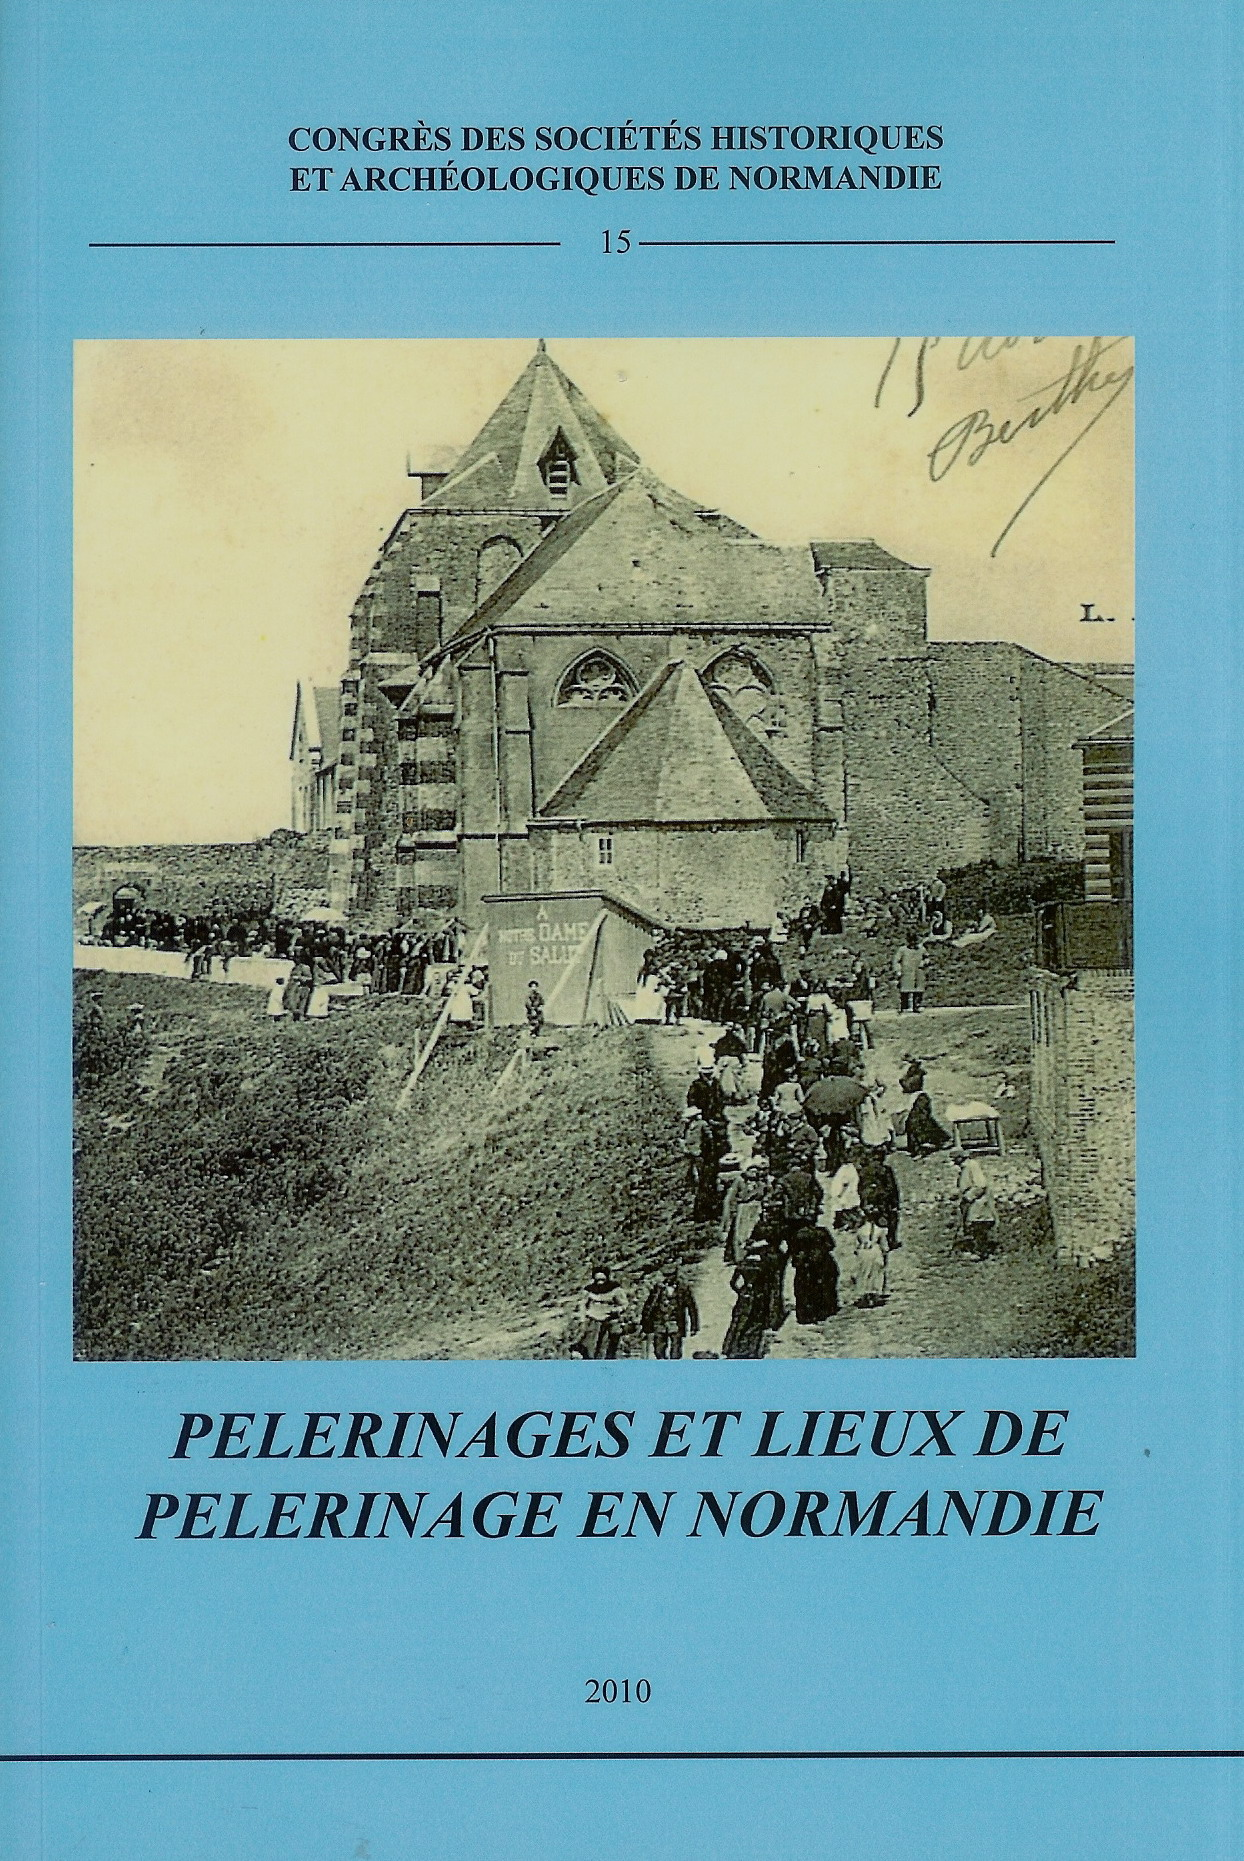 Pélerinages